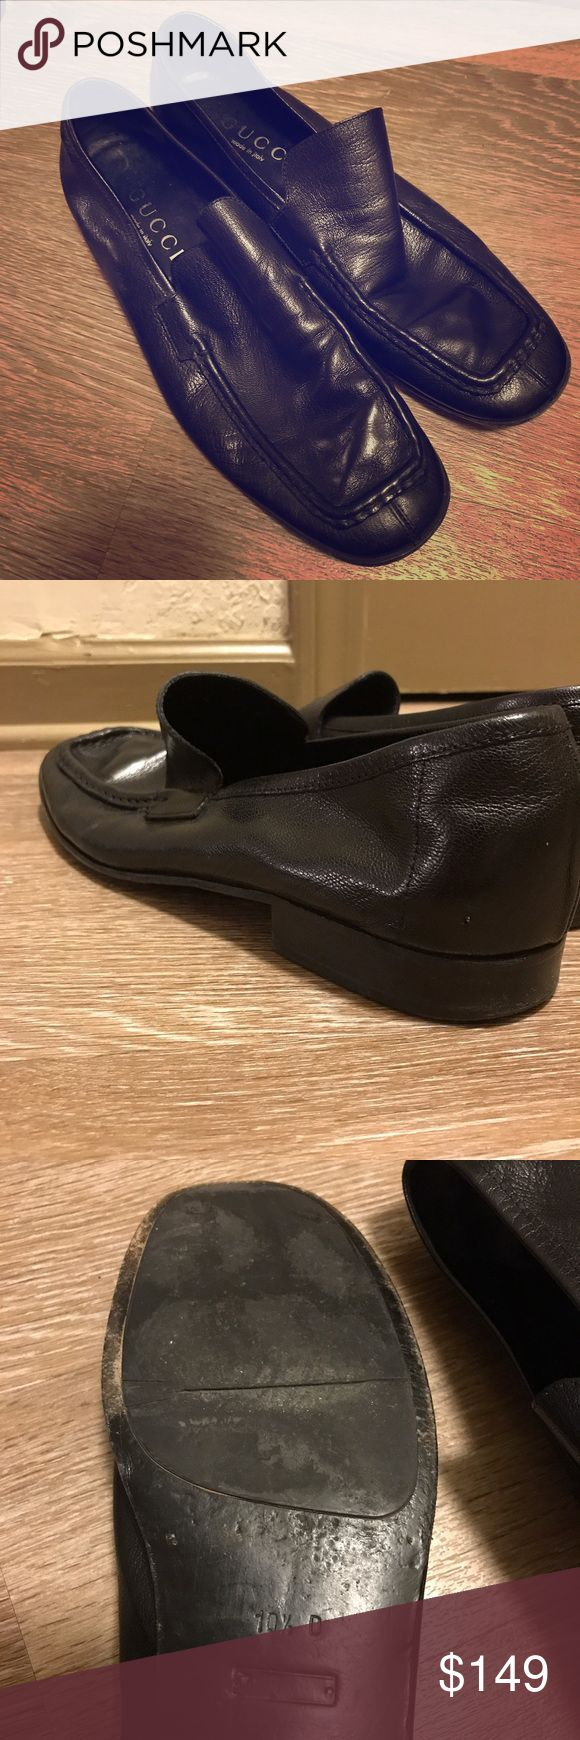 Men's Classic Gucci Black Leather Loafers Authentic, Classic, Gucci Shoes. Soft leather, VERY comfortable - signs of wear (see pics!). Still in very good condition. Gucci Shoes Loafers & Slip-Ons